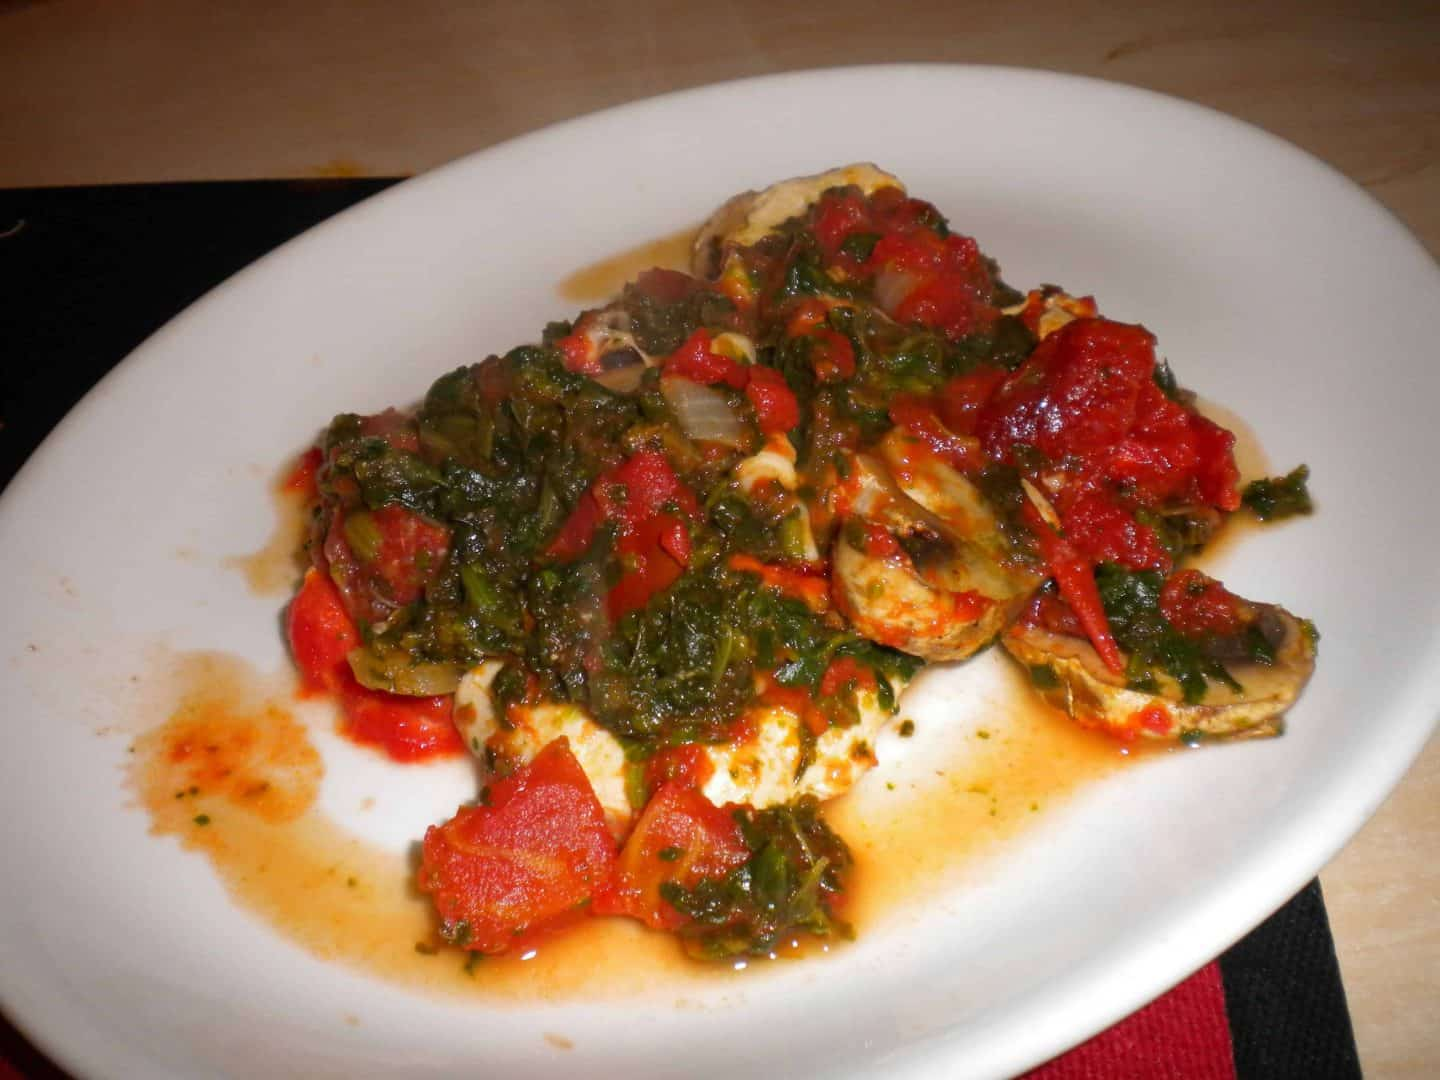 Tomato and Spinach Chicken Bake